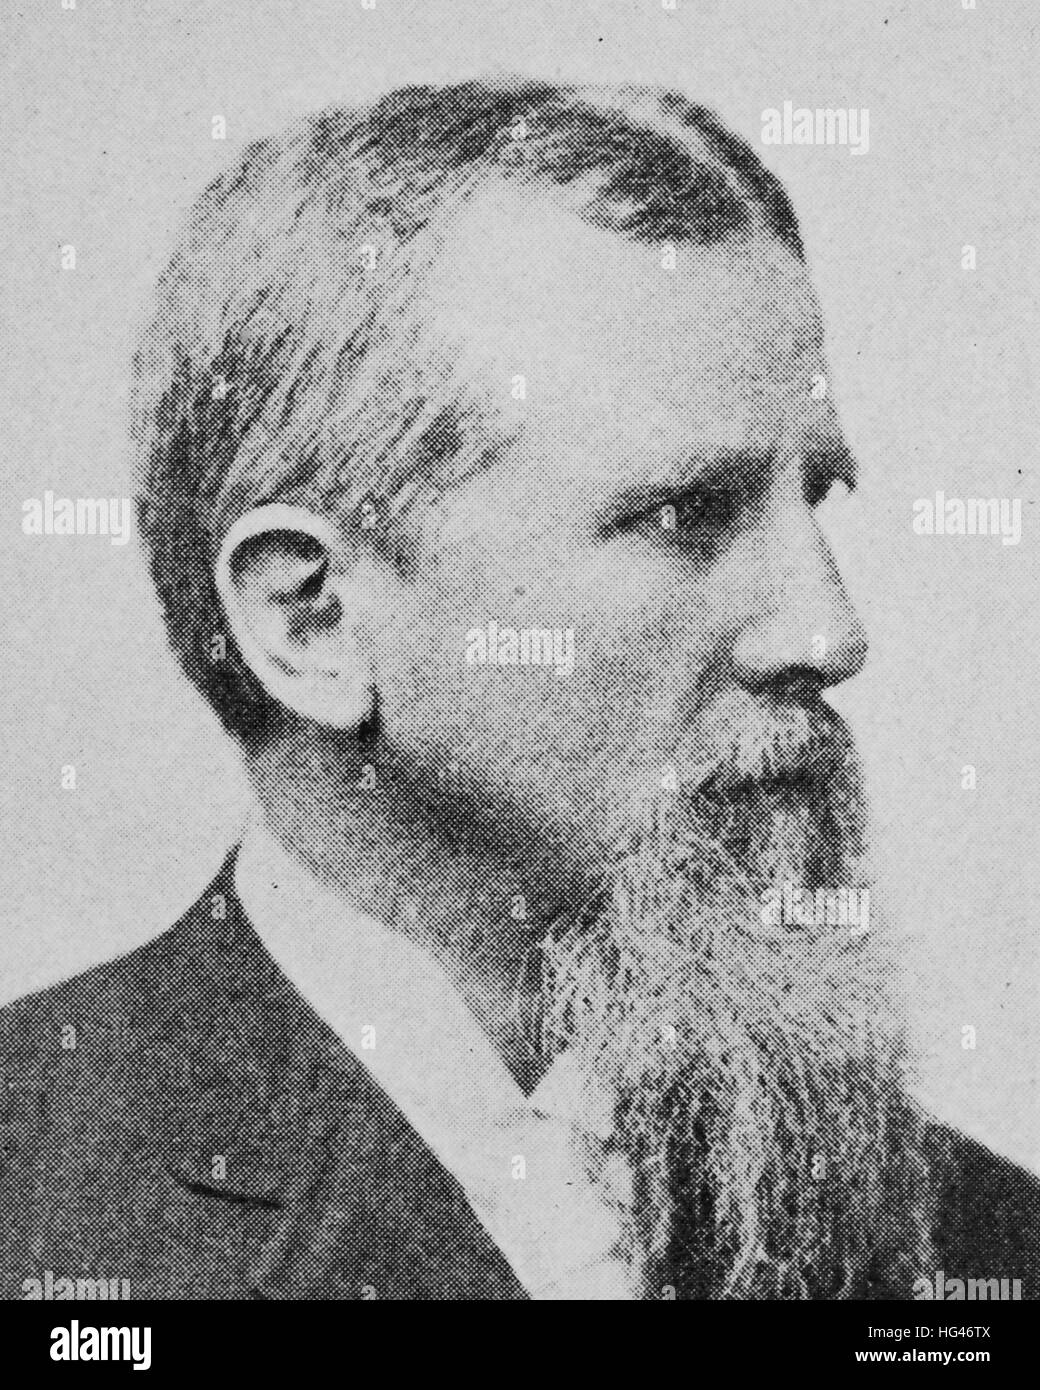 Friedrich Ratzel, August 30, 1844 - August 9, 1904, was a German geographer and ethnographer, reproduction of a - Stock Image